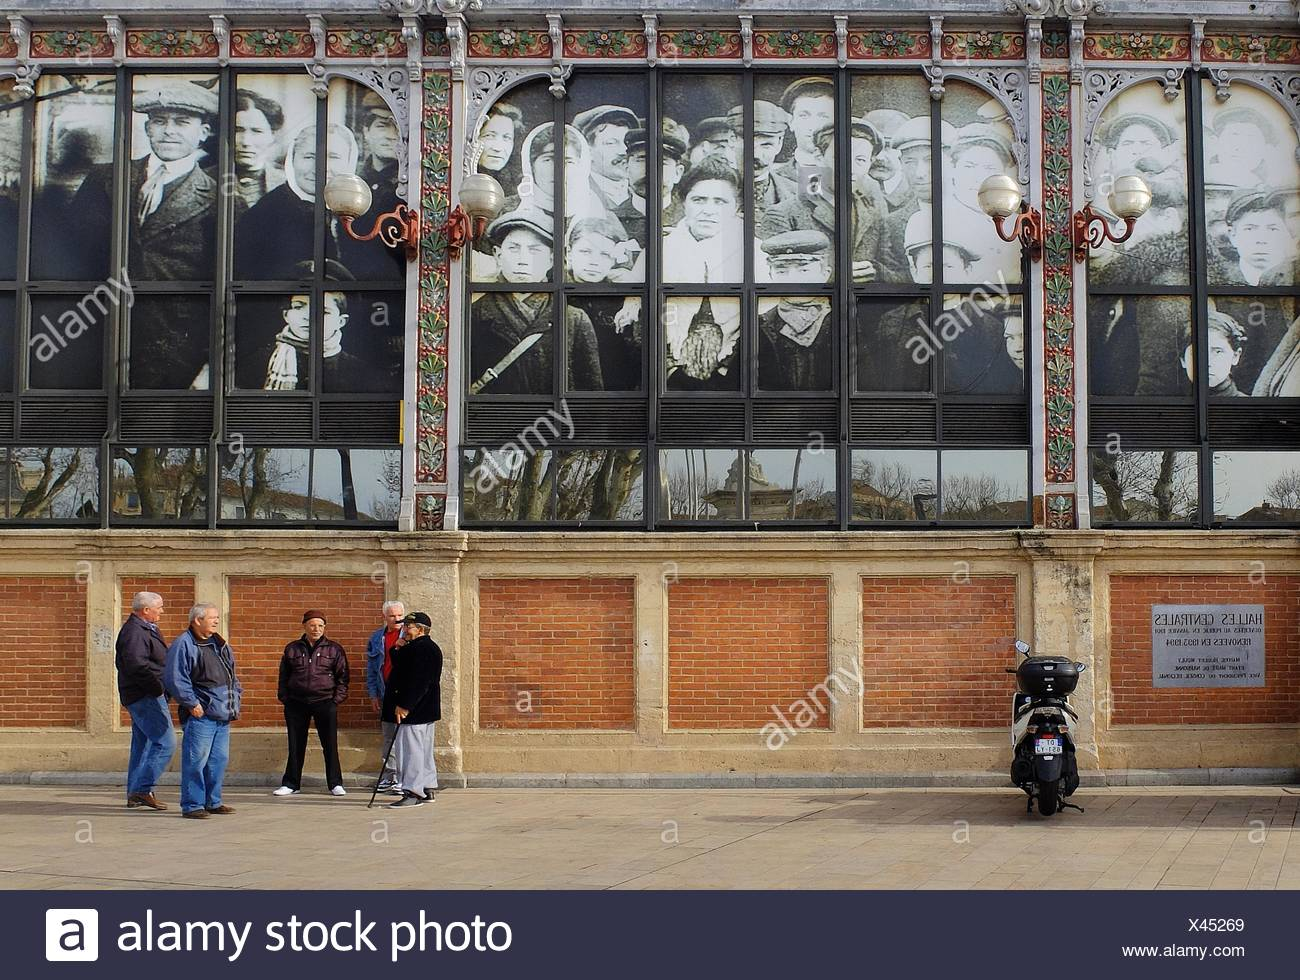 The windows of the ''Halles de Narbonne'' are decorated with photographic images of the people of 1900s Narbonne, France who built and shopped in - Stock Image